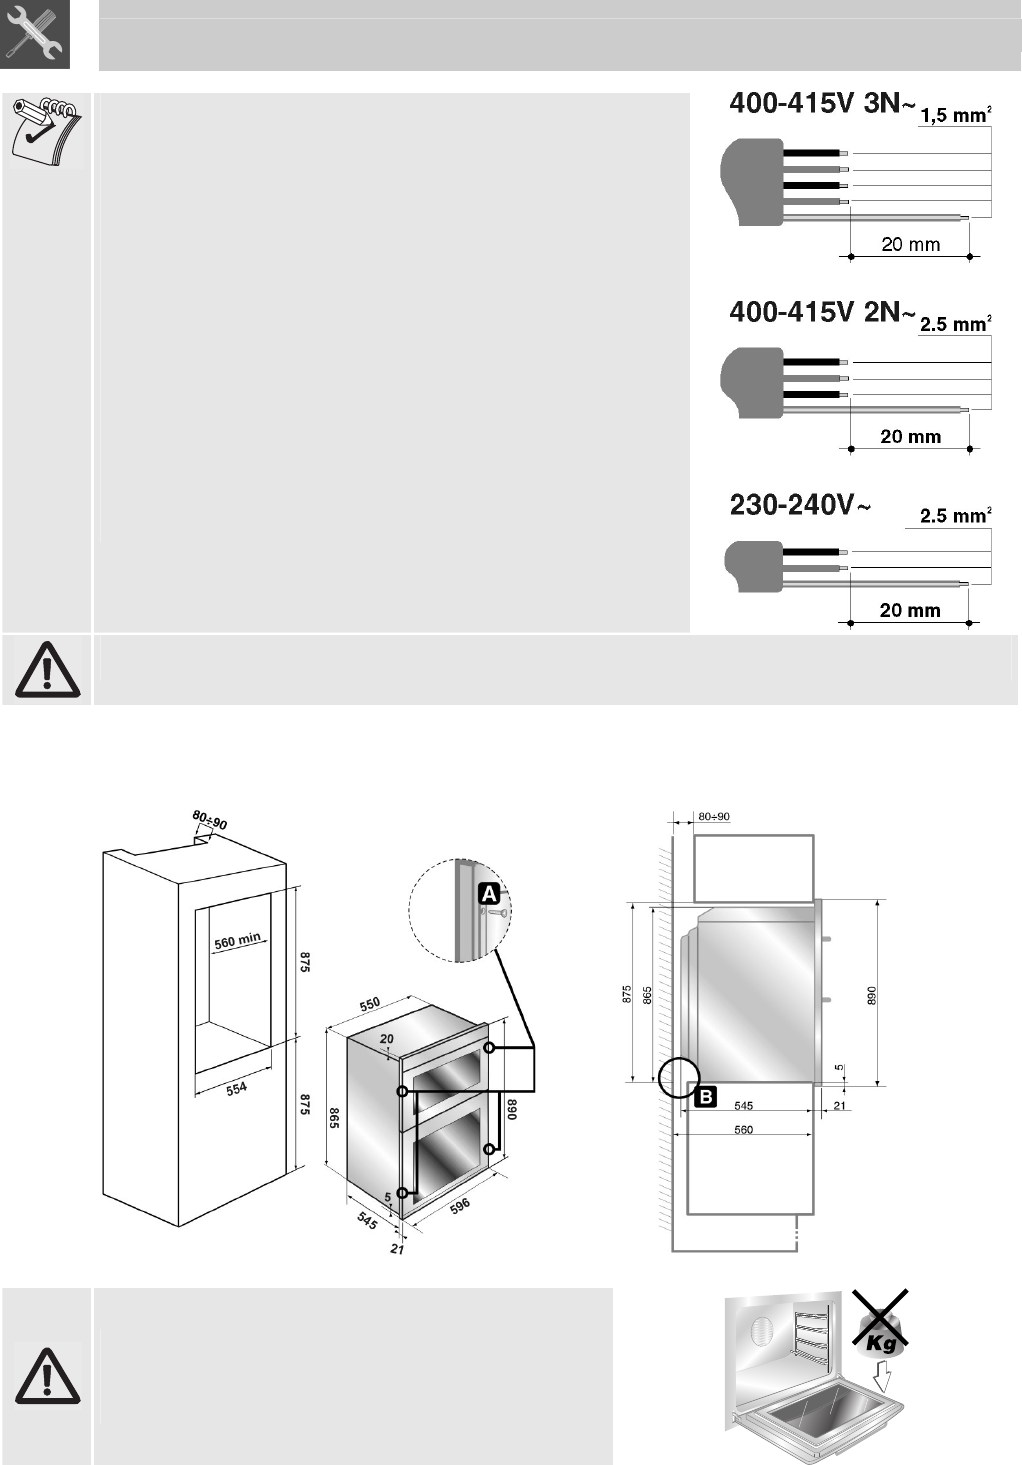 Smeg Sdo10 Instructions For Installation And Use Wiring Diagram Oven The Installer